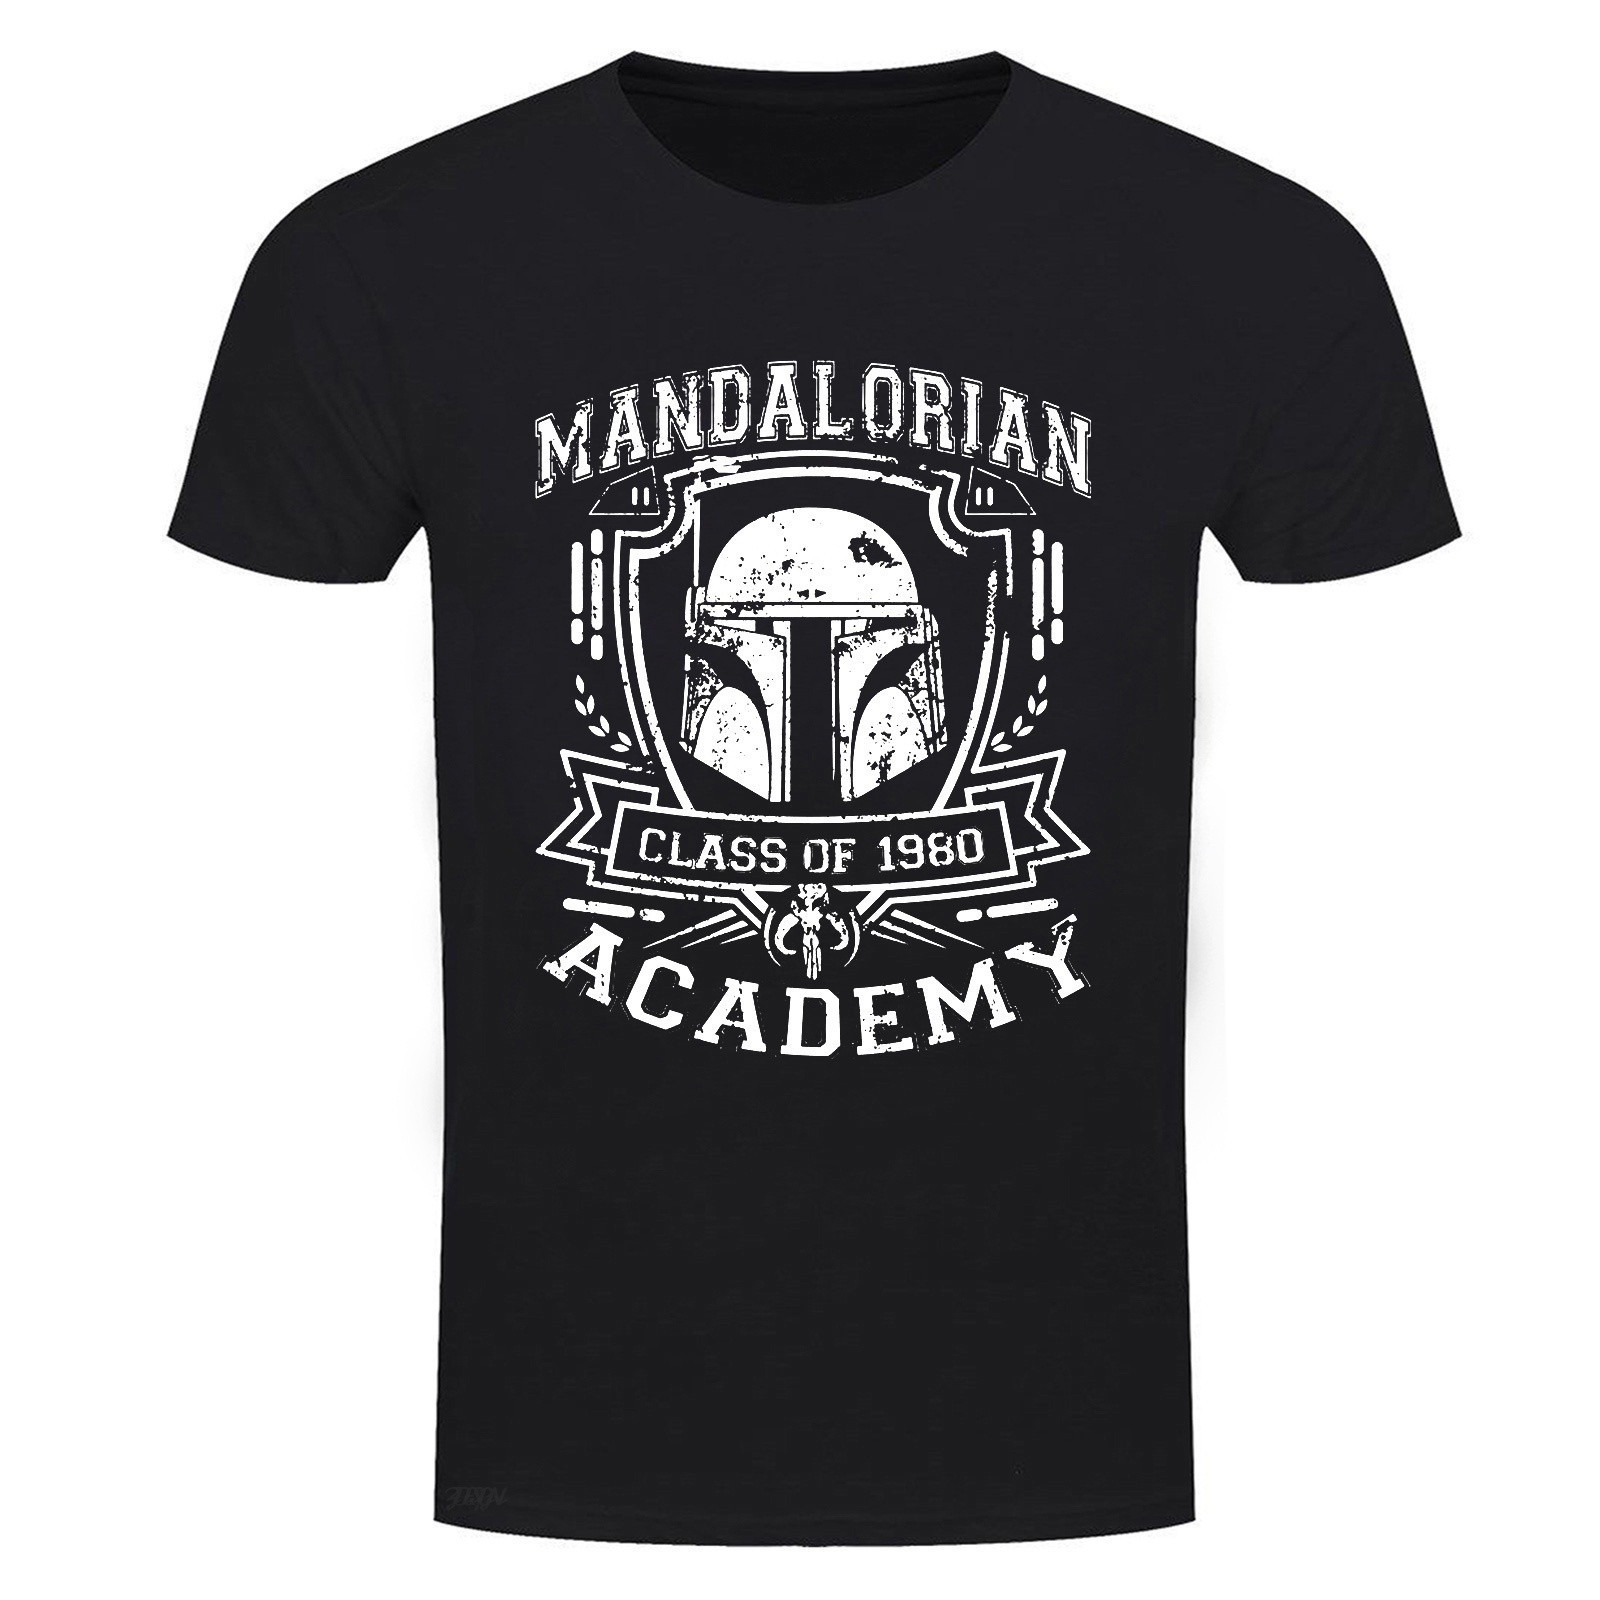 Mandalorian Academy Mens T Shirt Graphic Tee Cotton Shirts Casual Fashion,Star,Wars Fun,Kult,Jedi,Stormtrooper